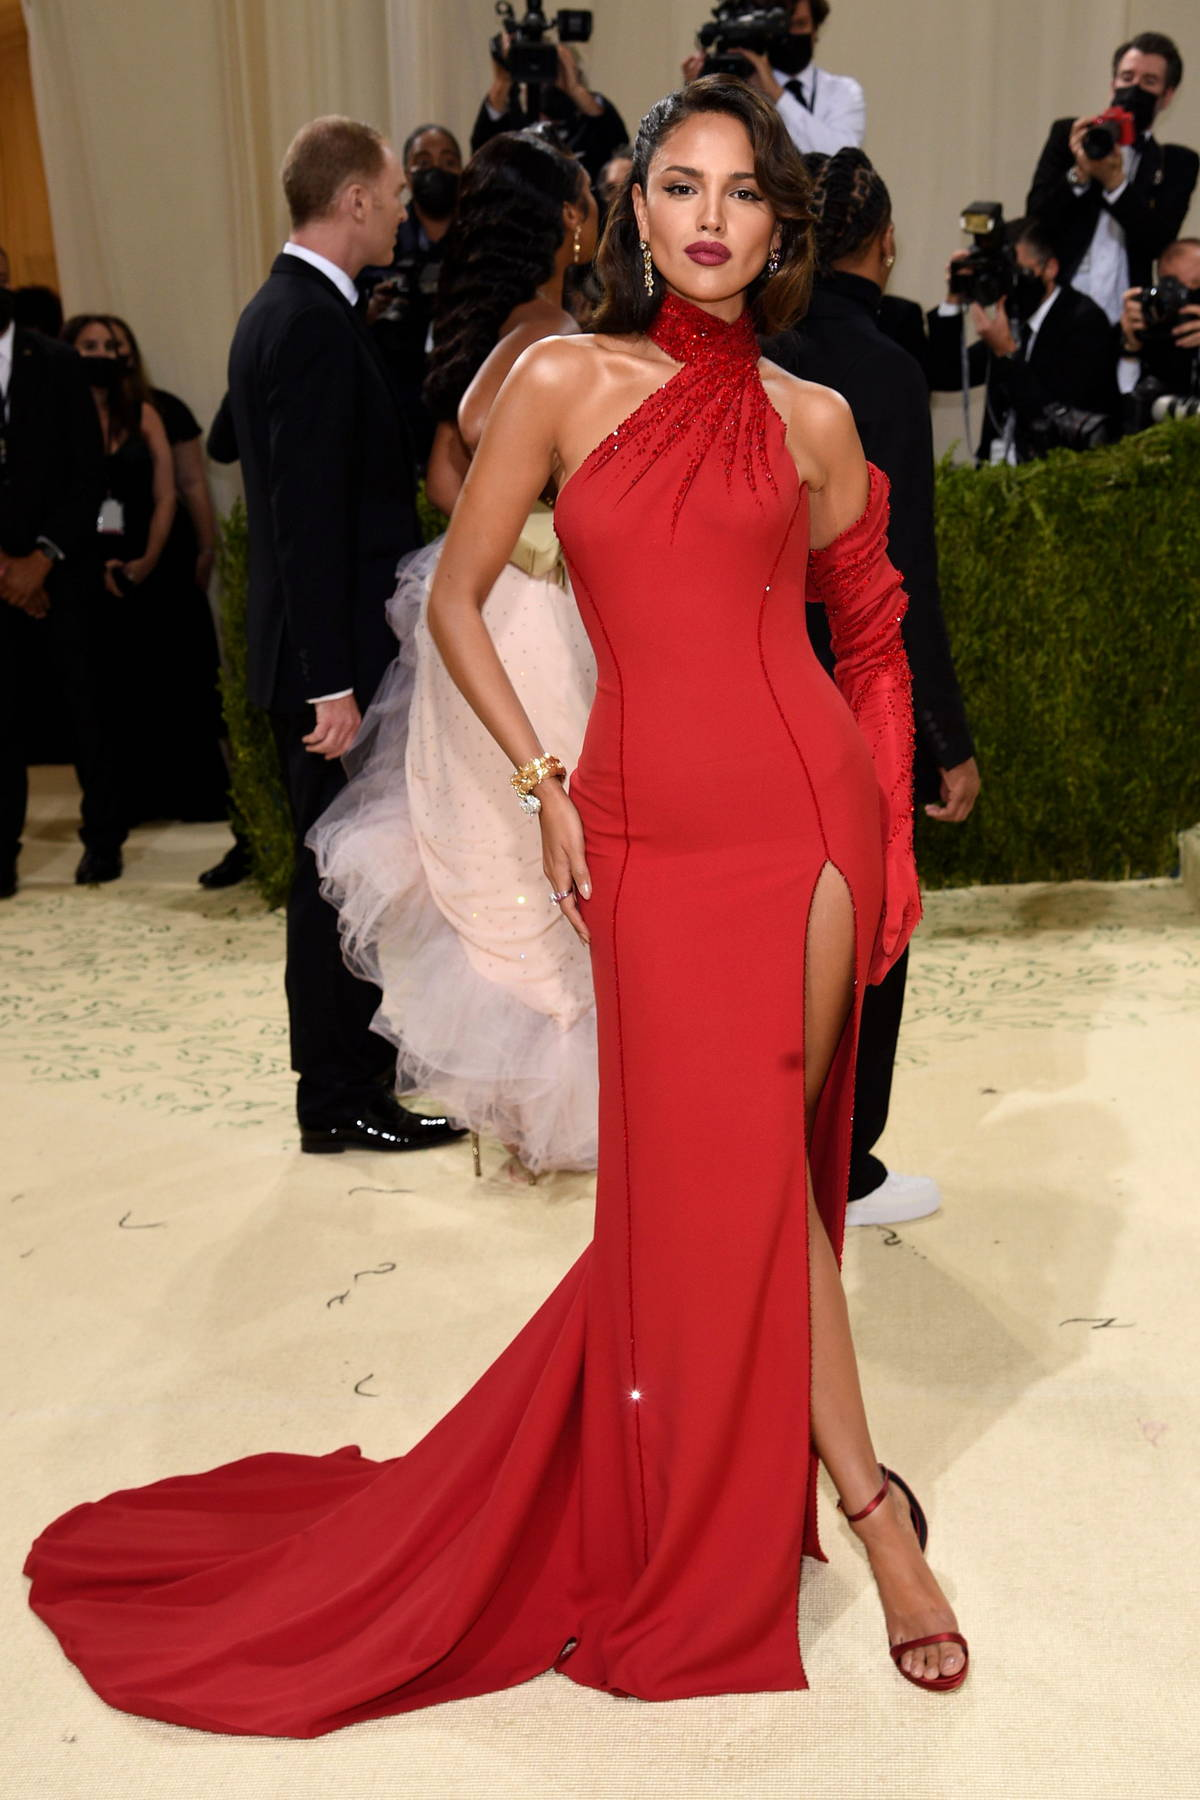 Eiza Gonzalez attends The Met Gala Celebrating In America: A Lexicon Of Fashion at Metropolitan Museum of Art in New York City